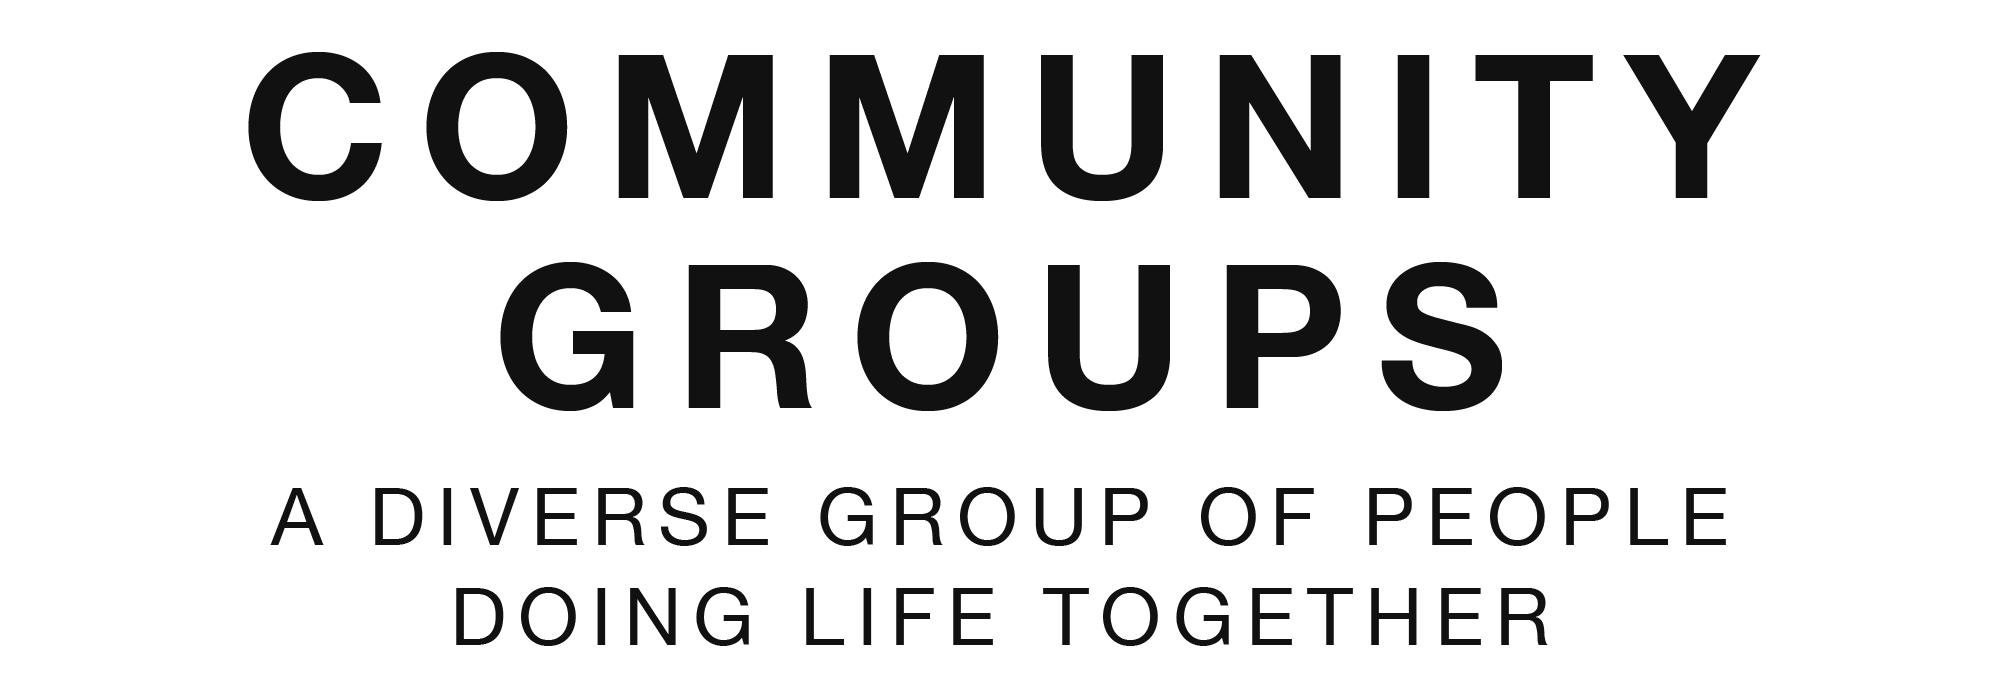 Community Groups – a diverse group of people doing life together